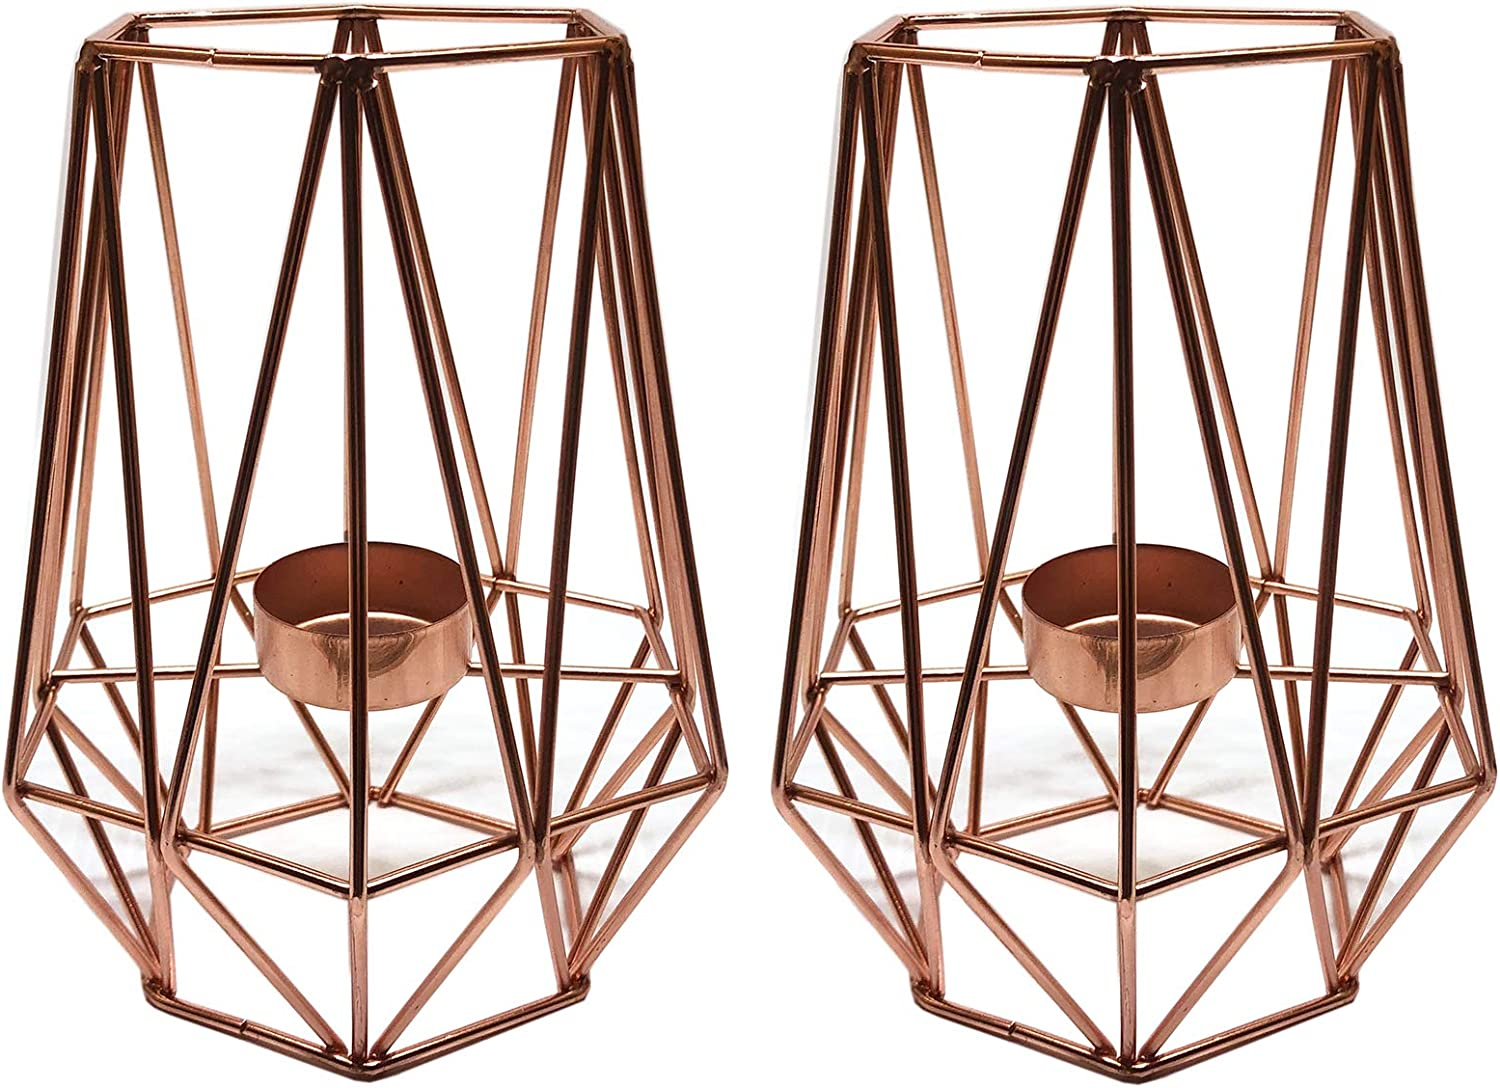 Rose Gold Geometric Candle Metal Decor All Phoenix Mall stores are sold Candlestick Holder